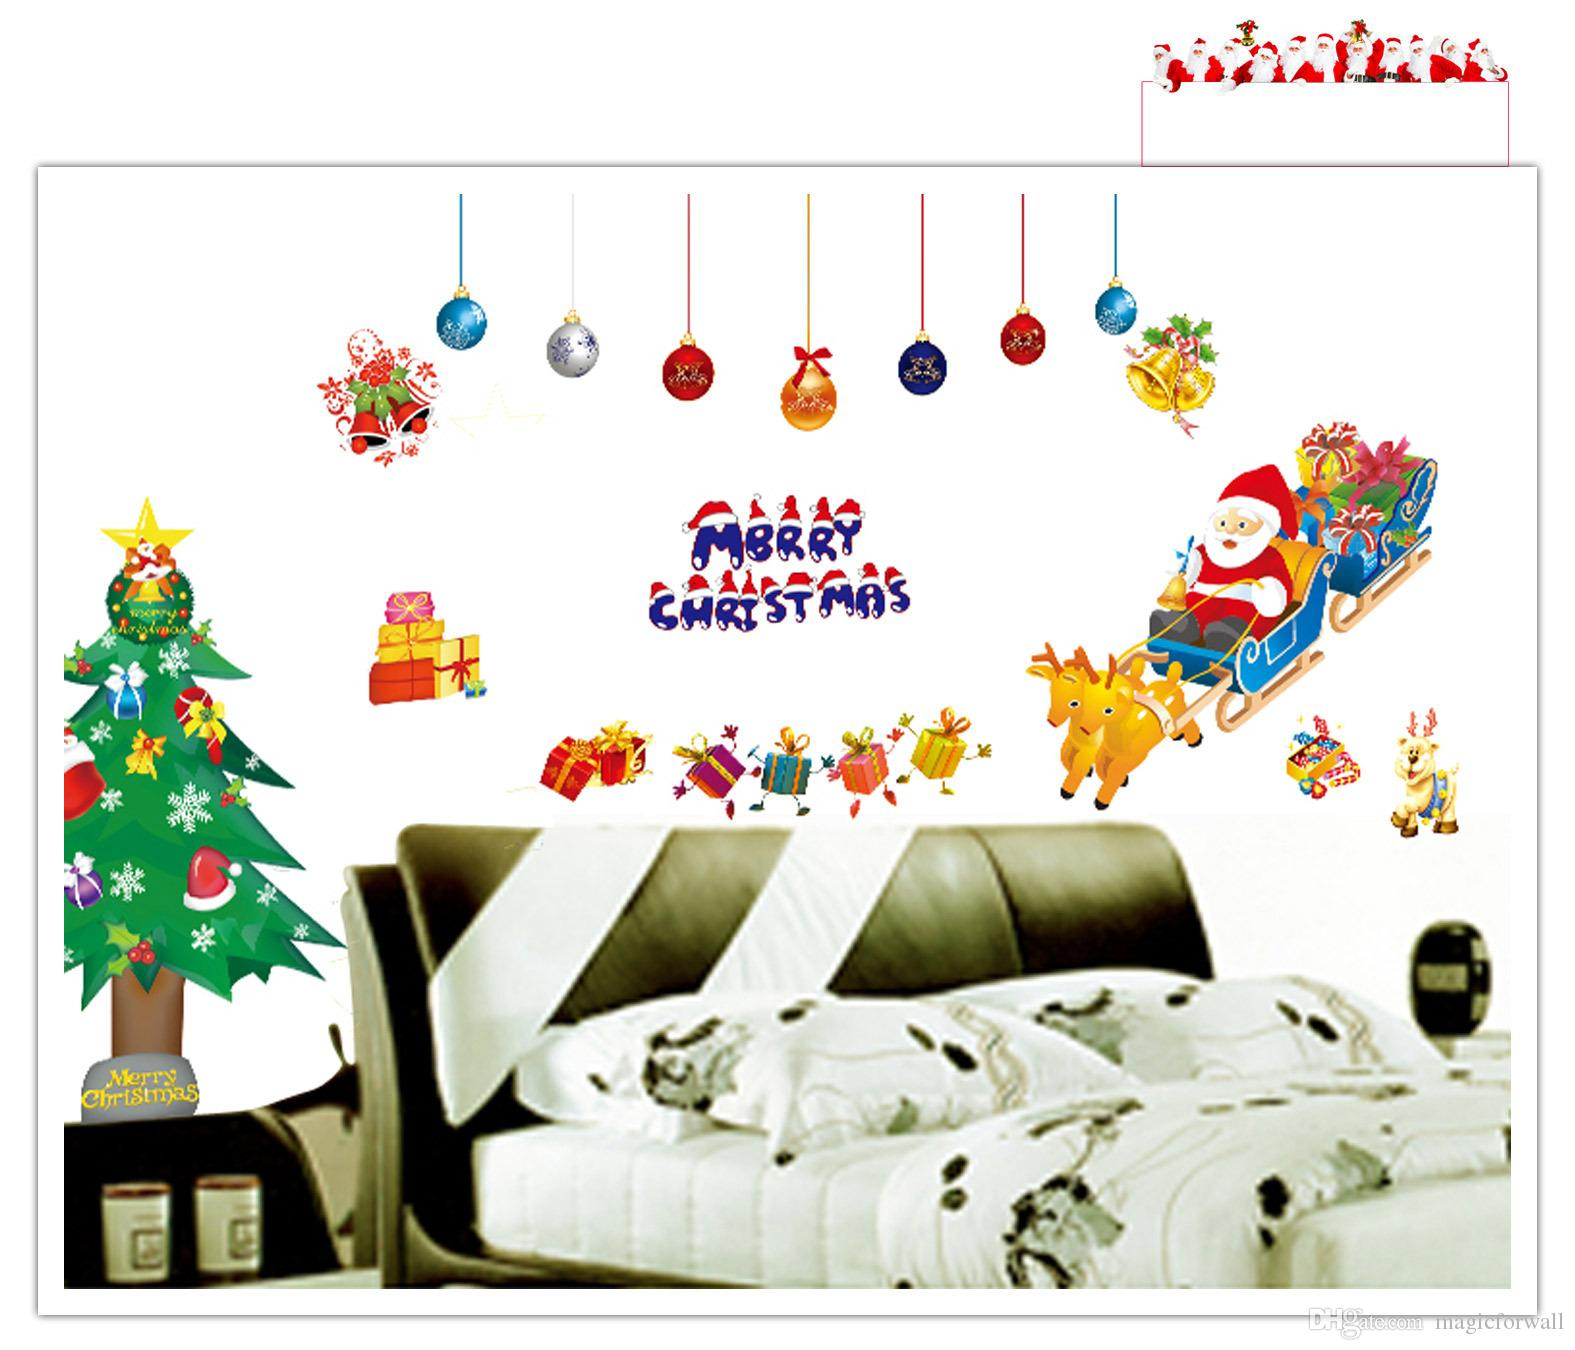 Merry Christmas Santa Clause Xmas Tree Wall Art Decal